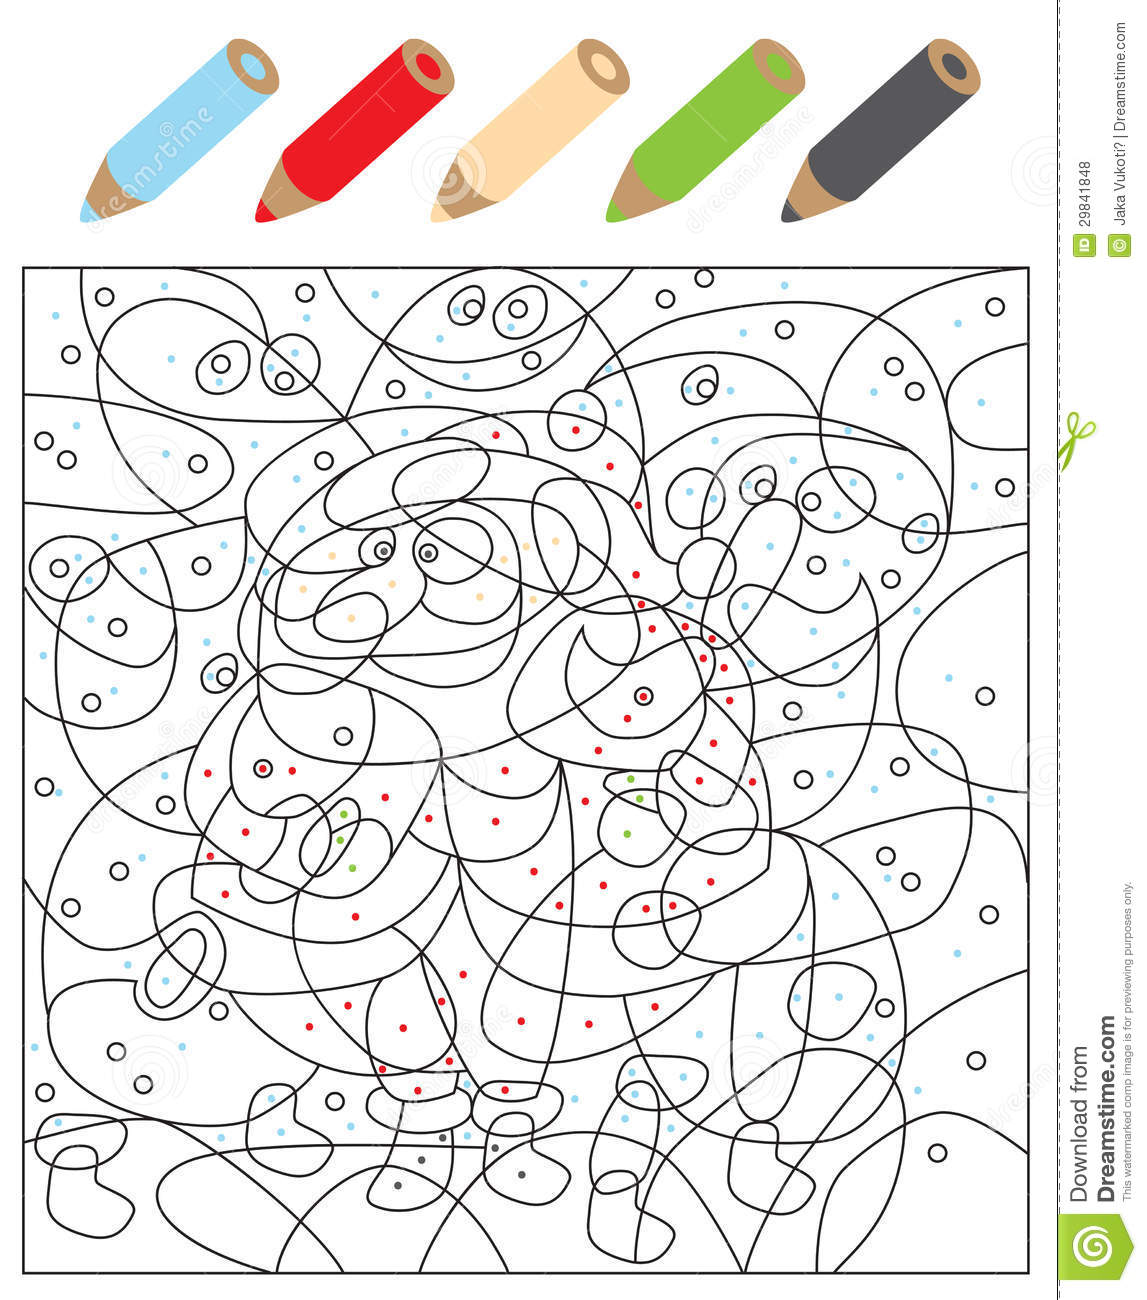 Color The Dots Visual Game Stock Vector Illustration Of Contours